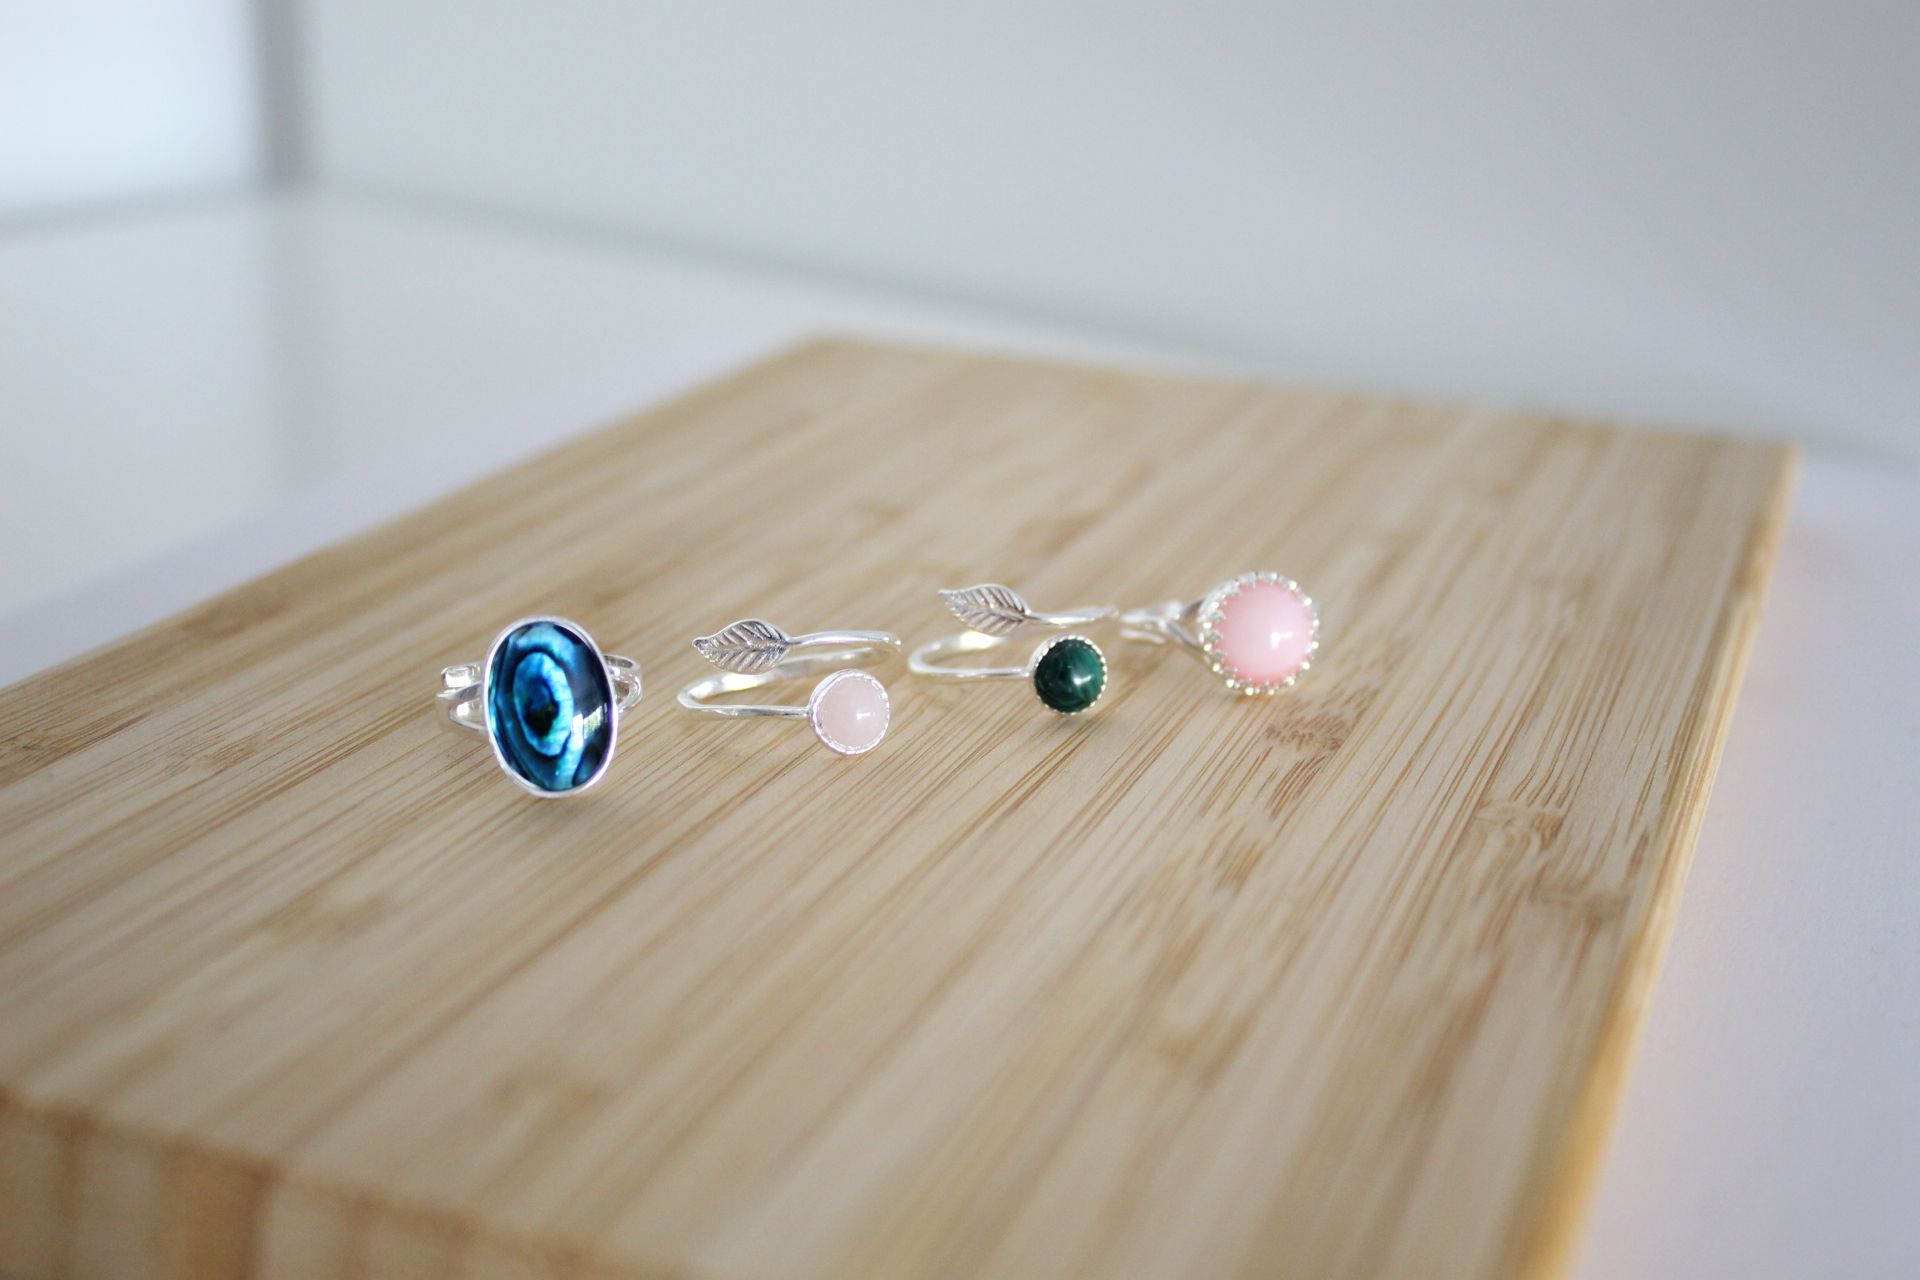 Handmade Gemstone Rings by Streets Craft Creations